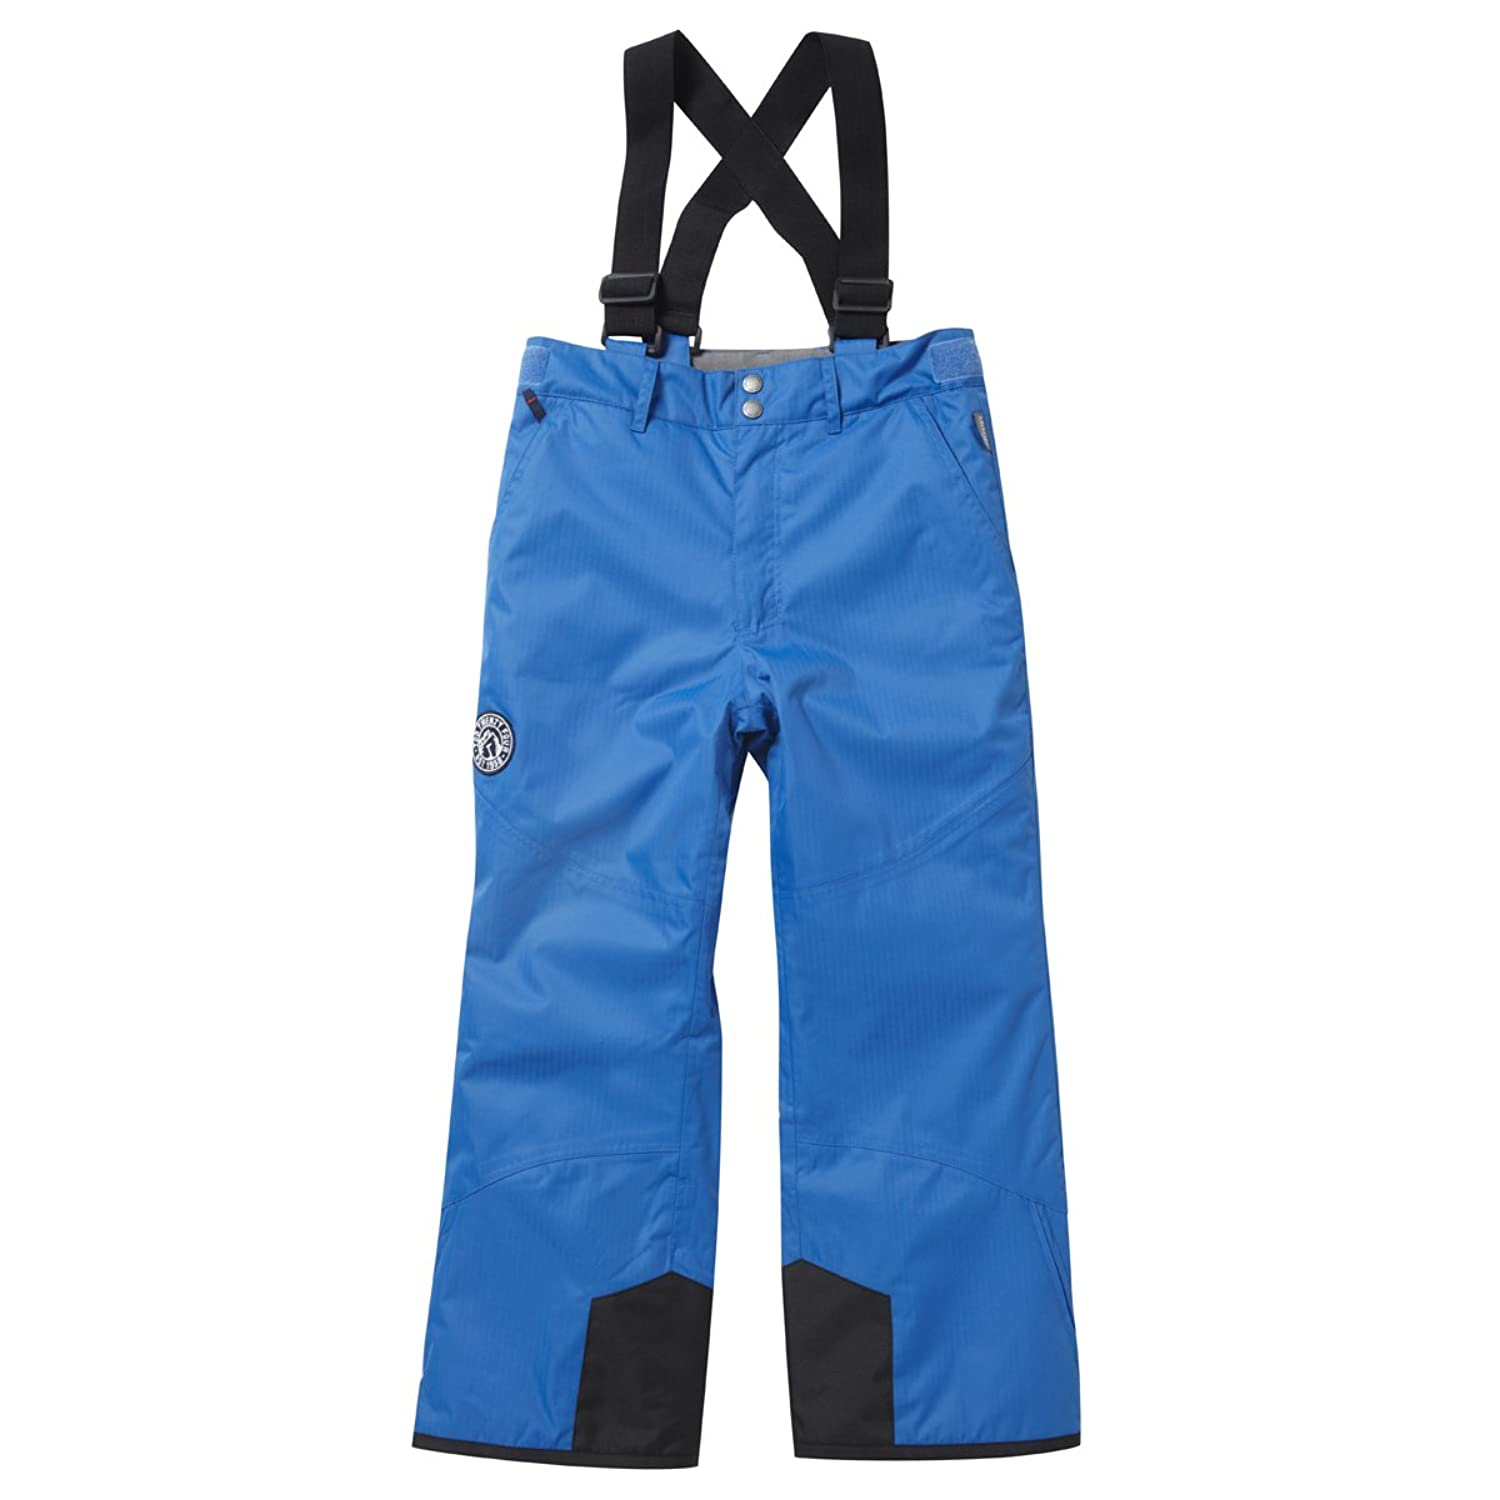 24 KIDS MILATEX TOG SLIDE SKIHOSE BLAU